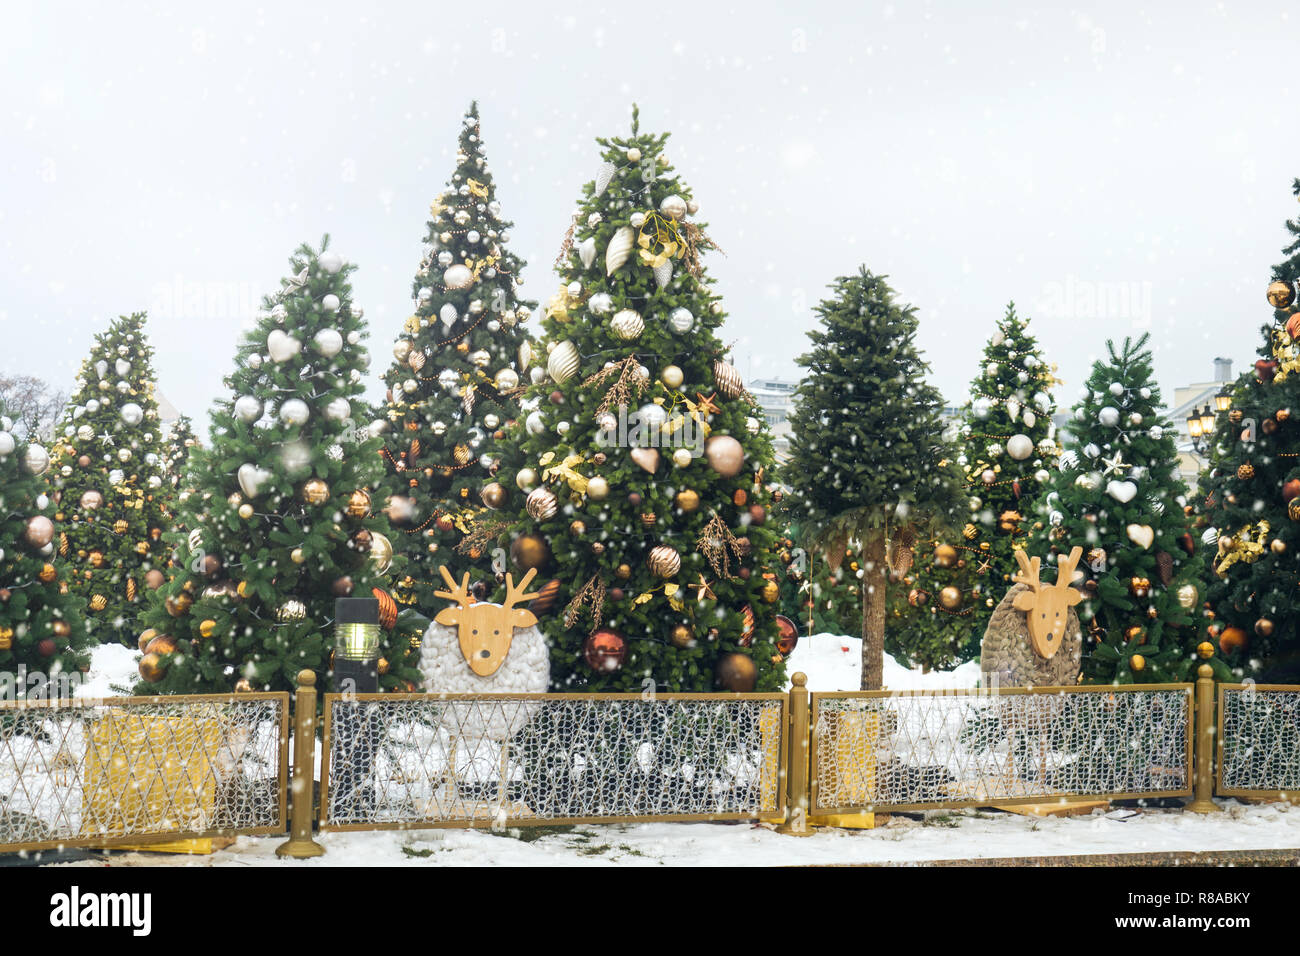 Christmas Toys Balls and Snowflakes on the Tree Christmas Fair - Stock Image